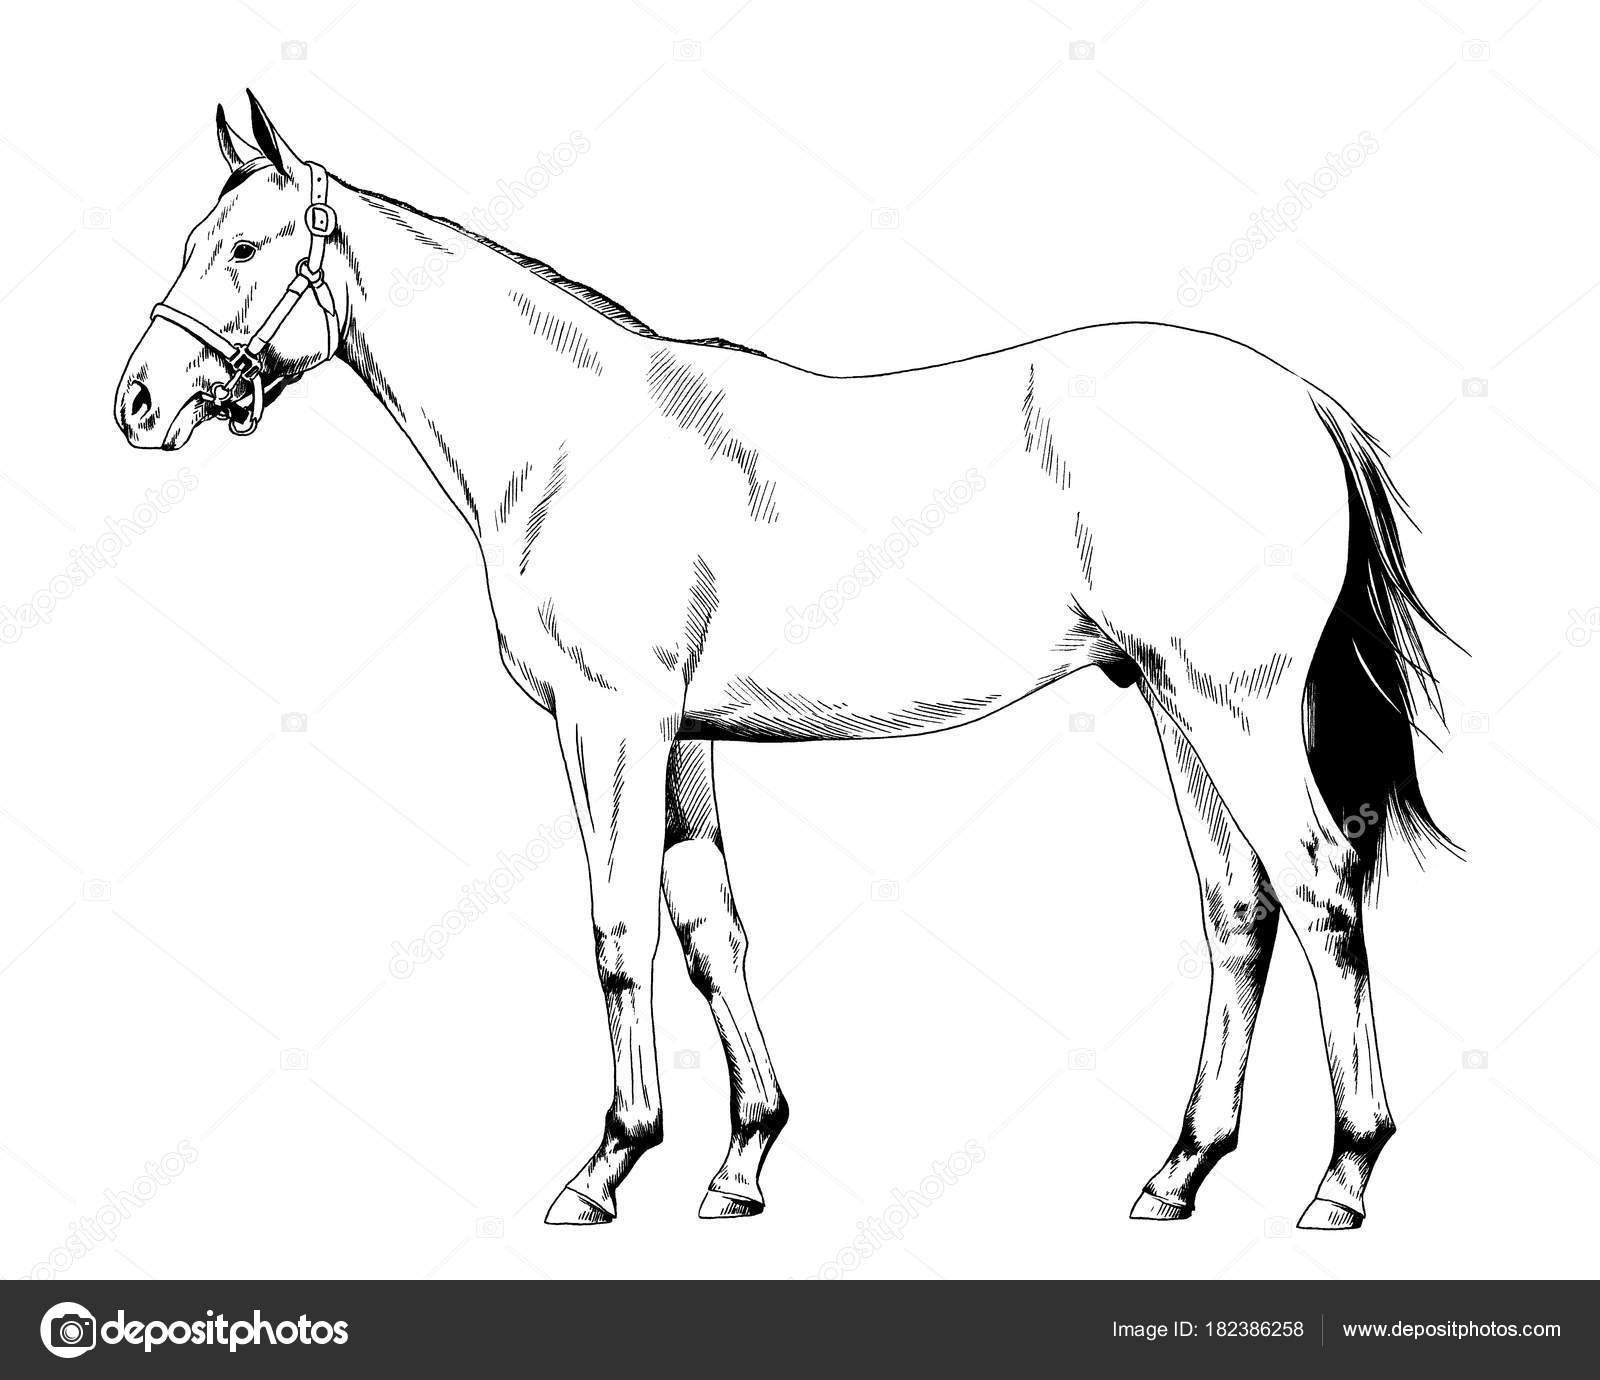 1600x1380 Race Horse Harness Drawn Ink Hand White Background Full Length